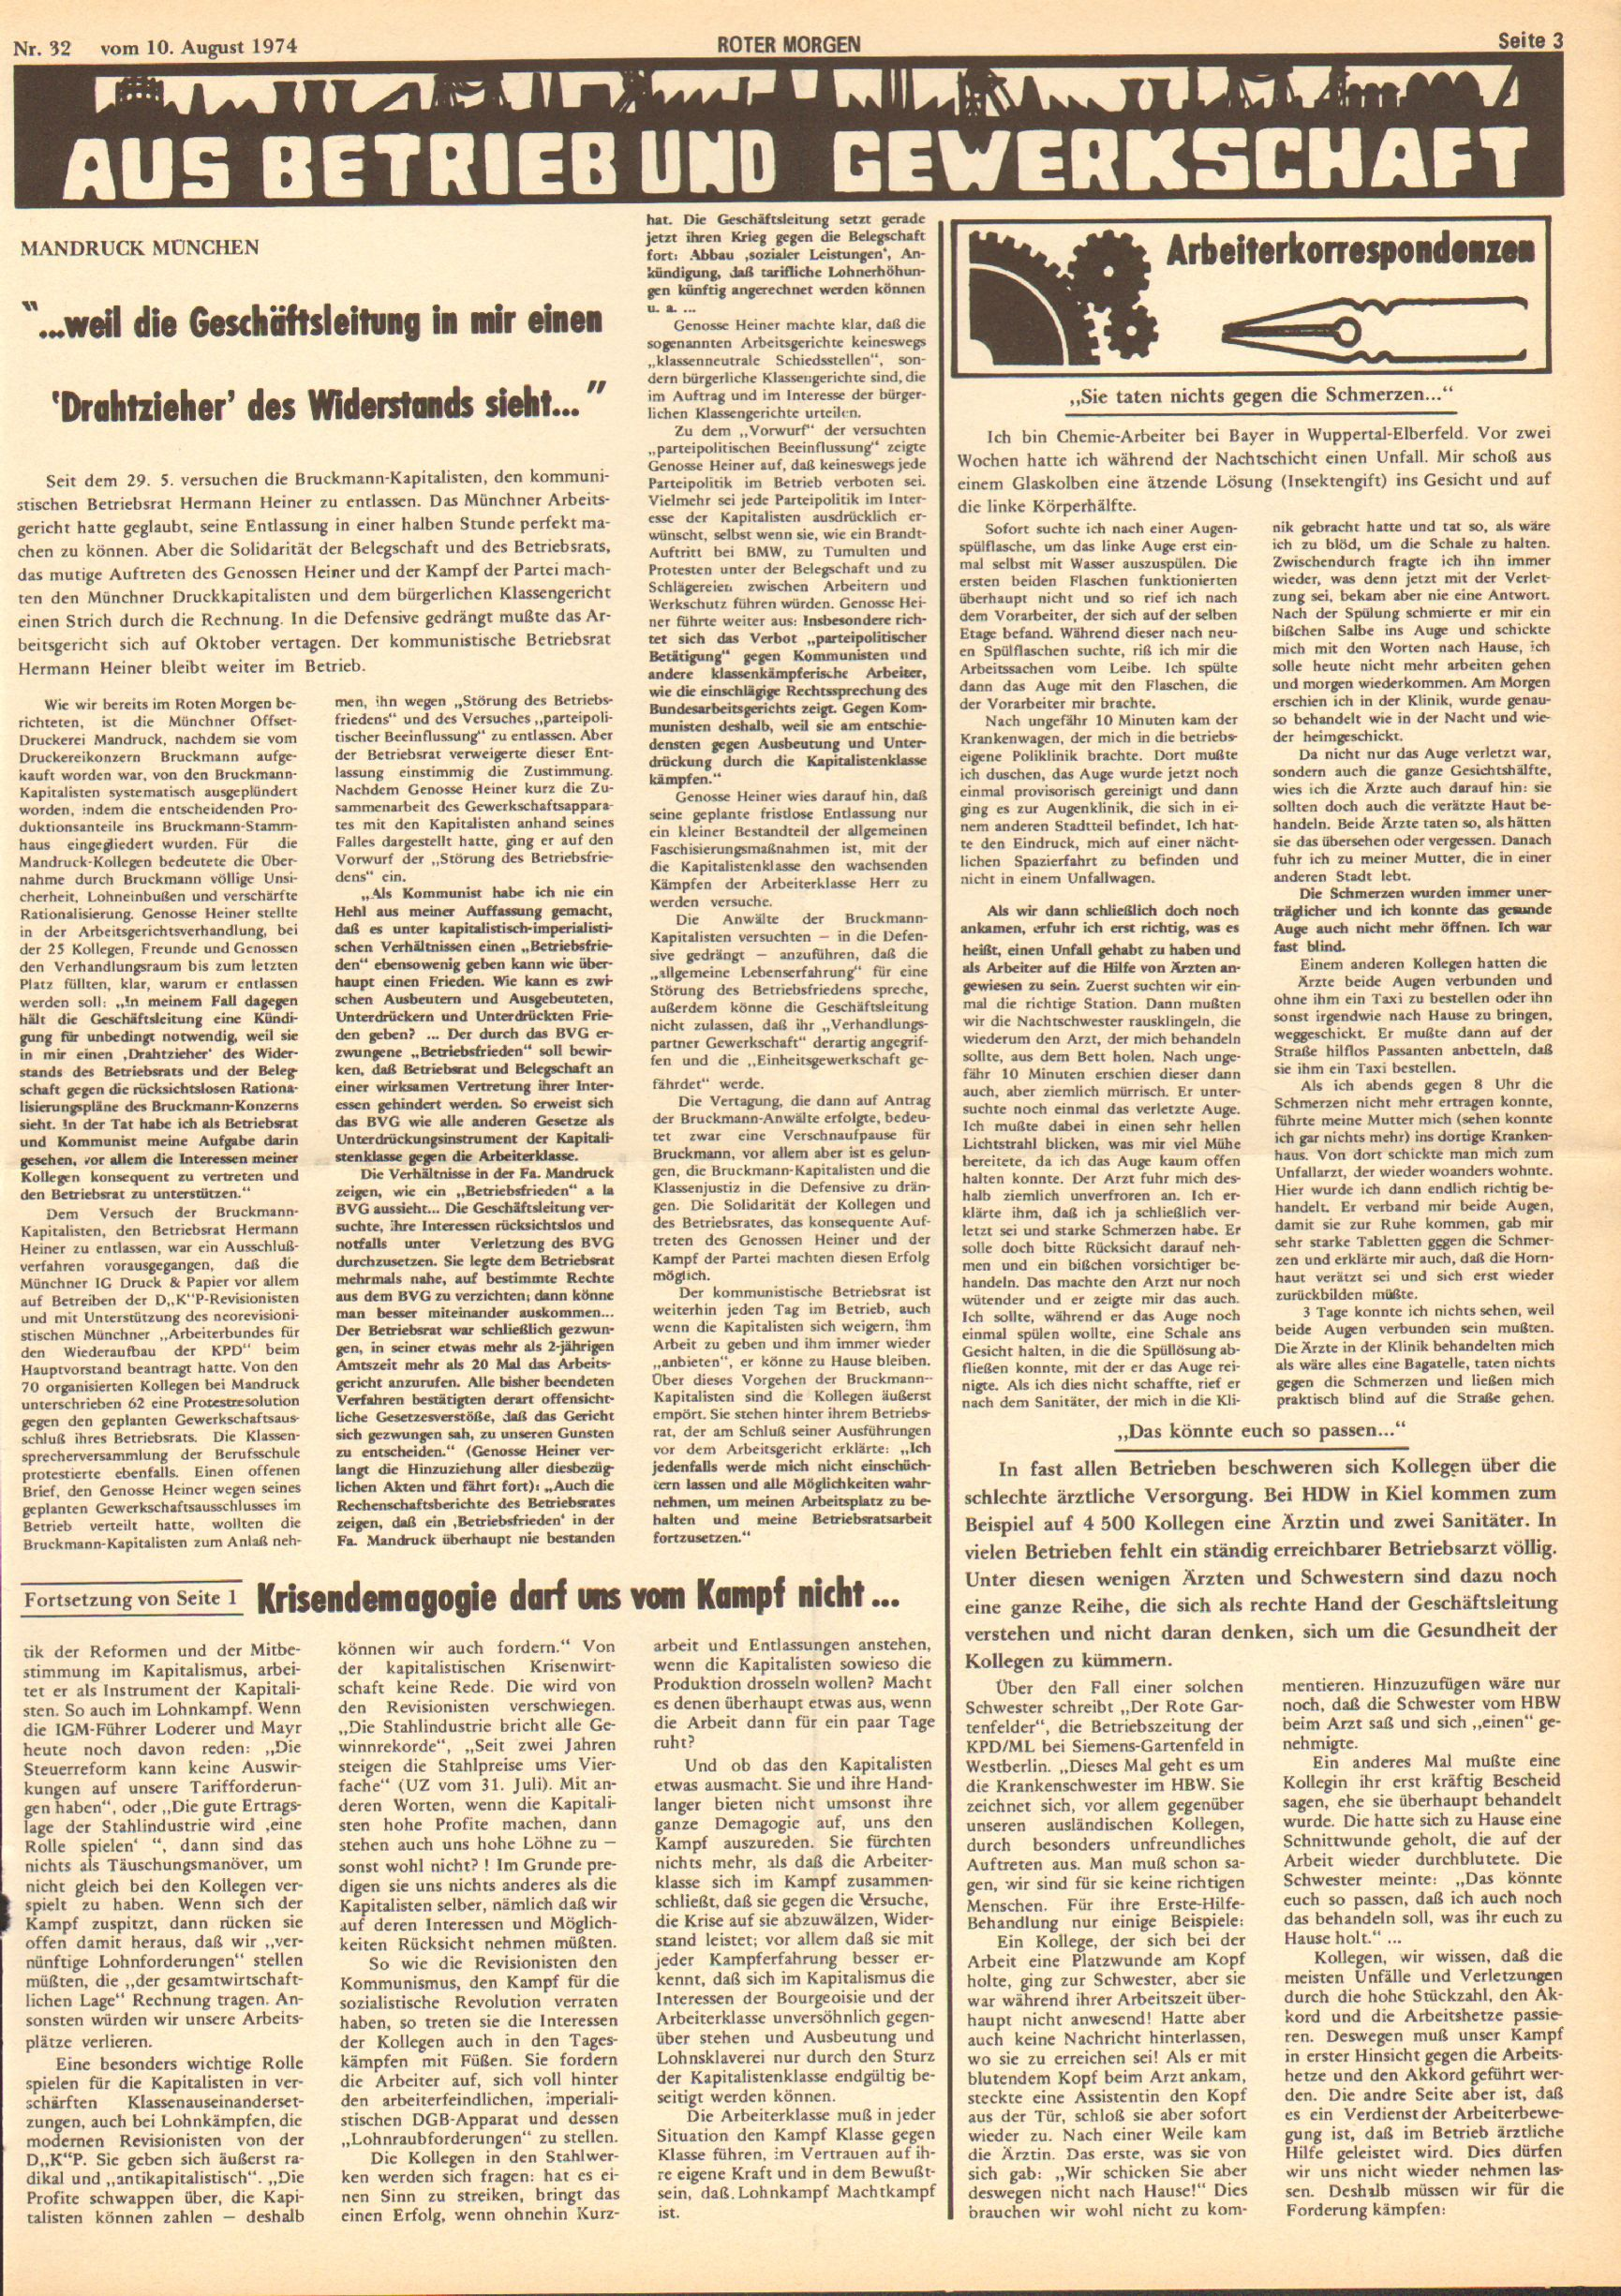 Roter Morgen, 8. Jg., 10. August 1974, Nr. 32, Seite 3